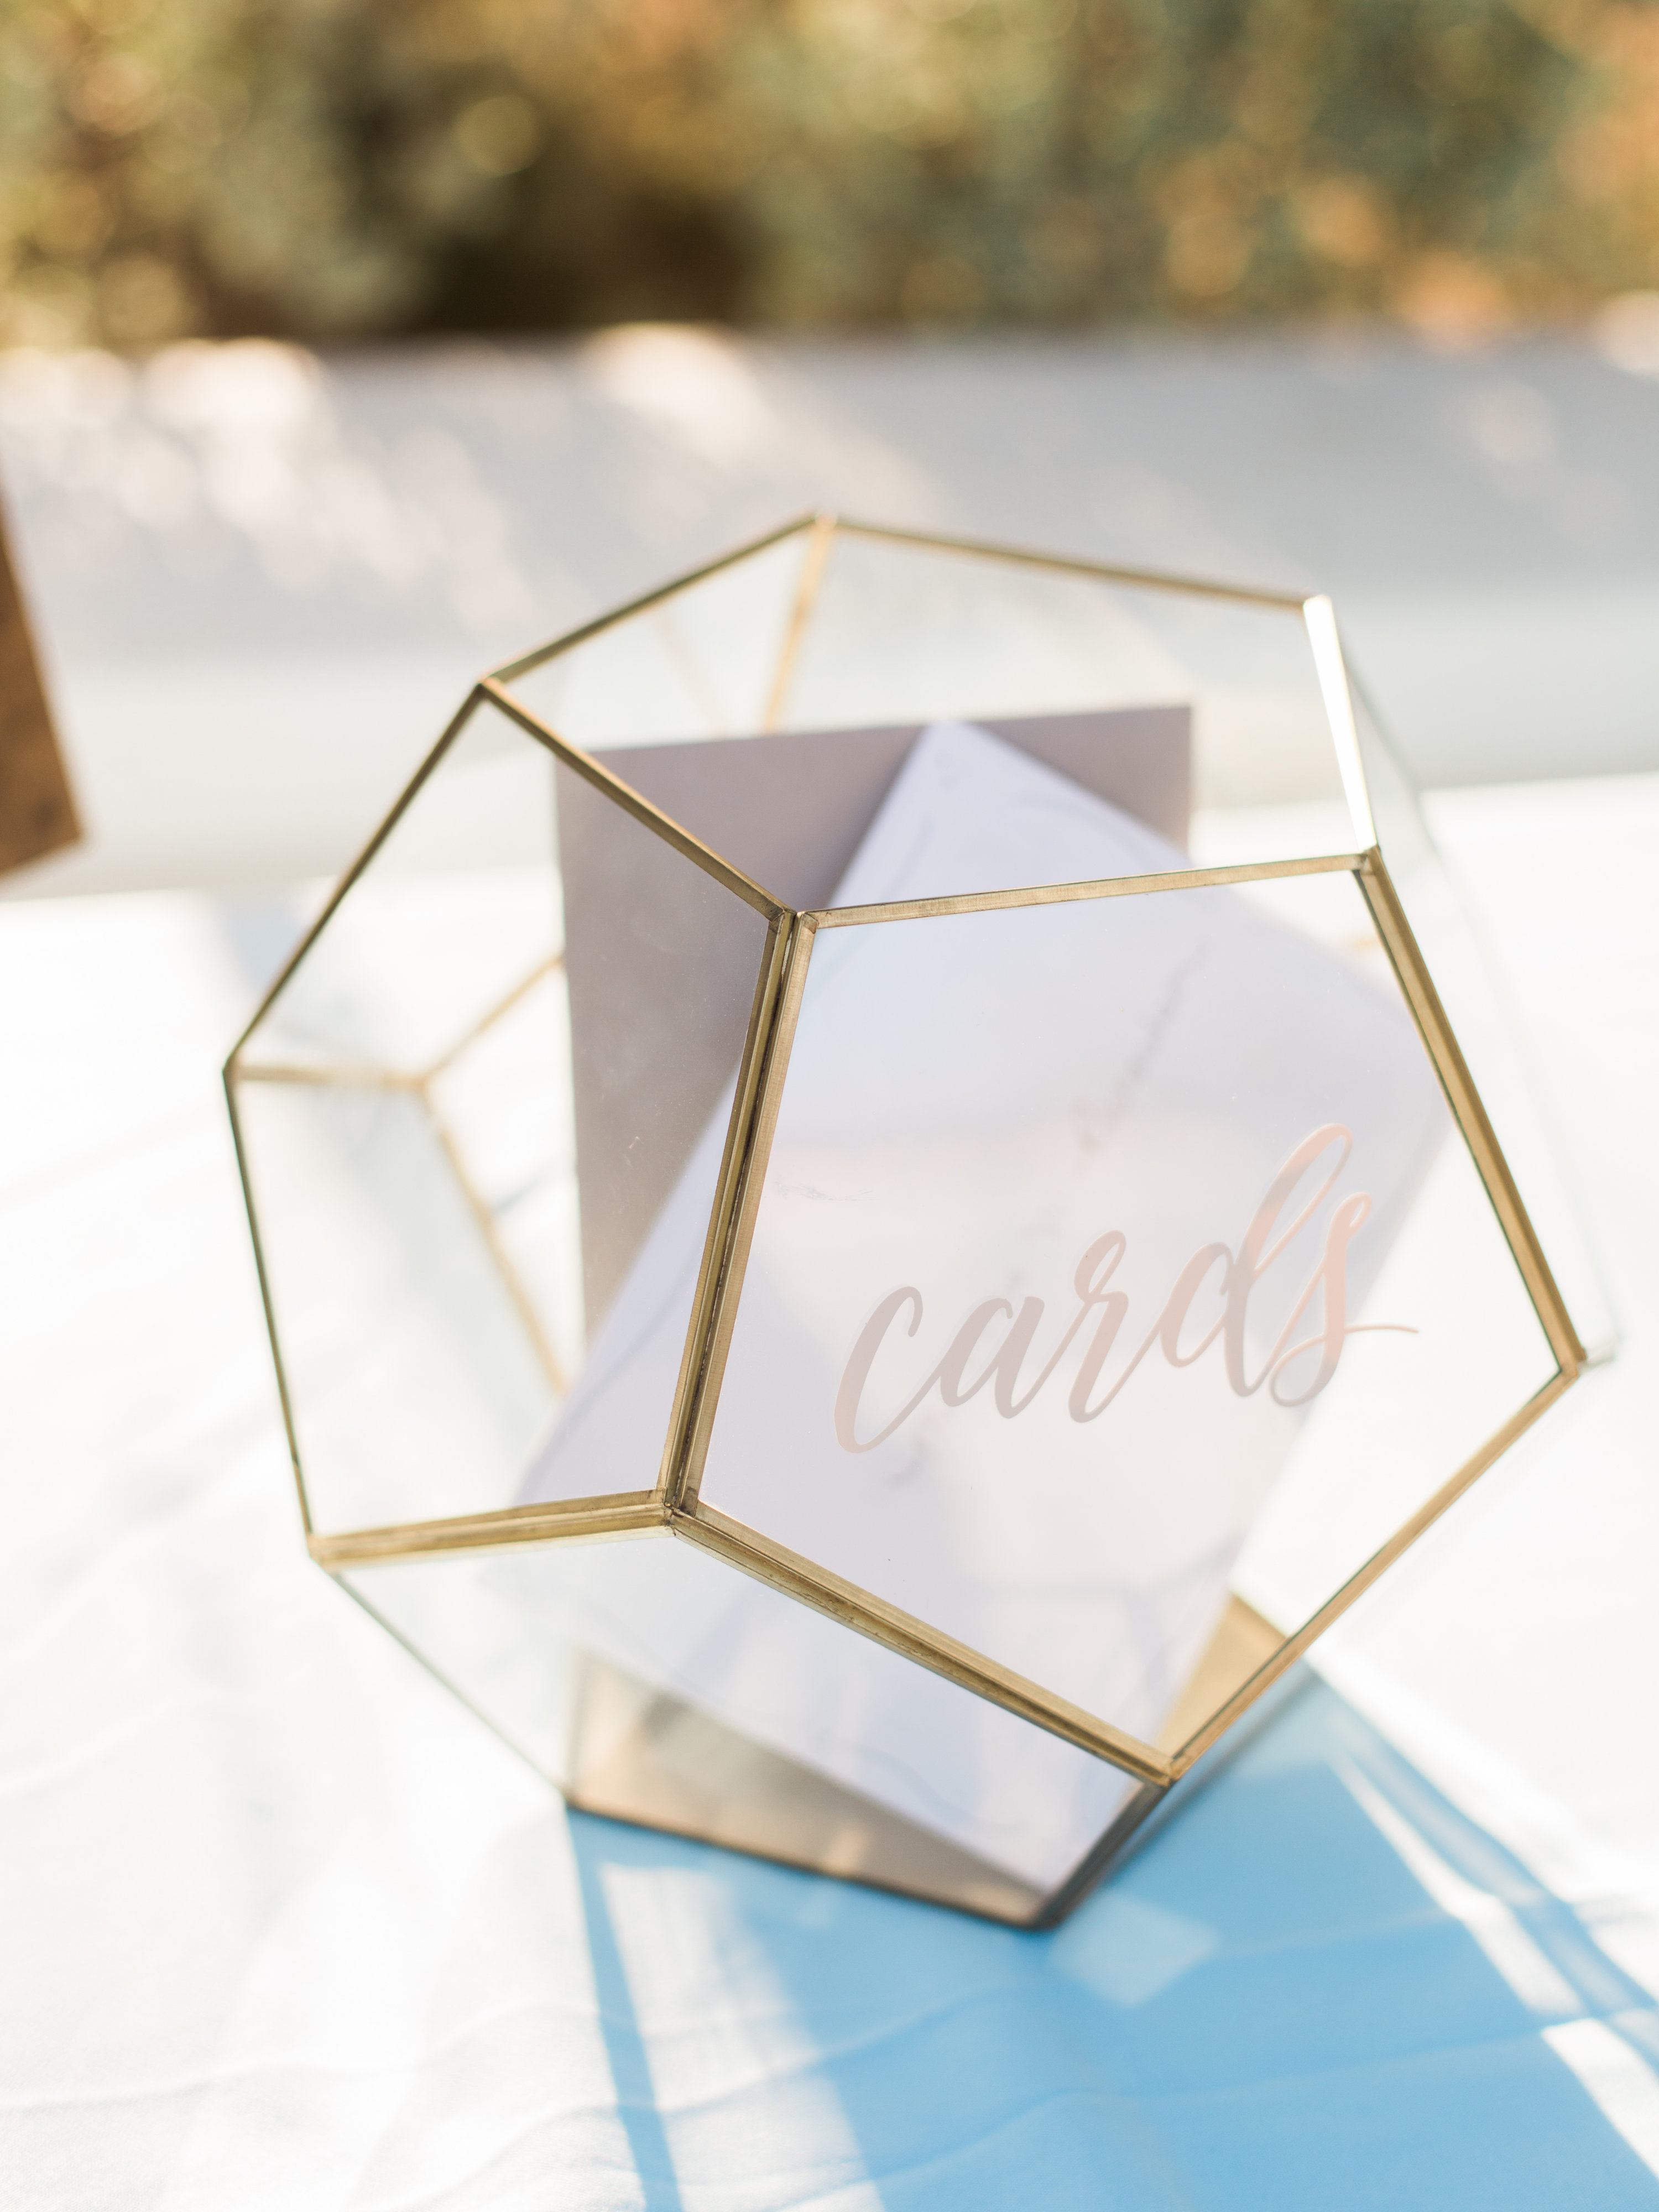 5 Reasons Why You Always Should Buy Gifts Listed on the Couple's Wedding Registry